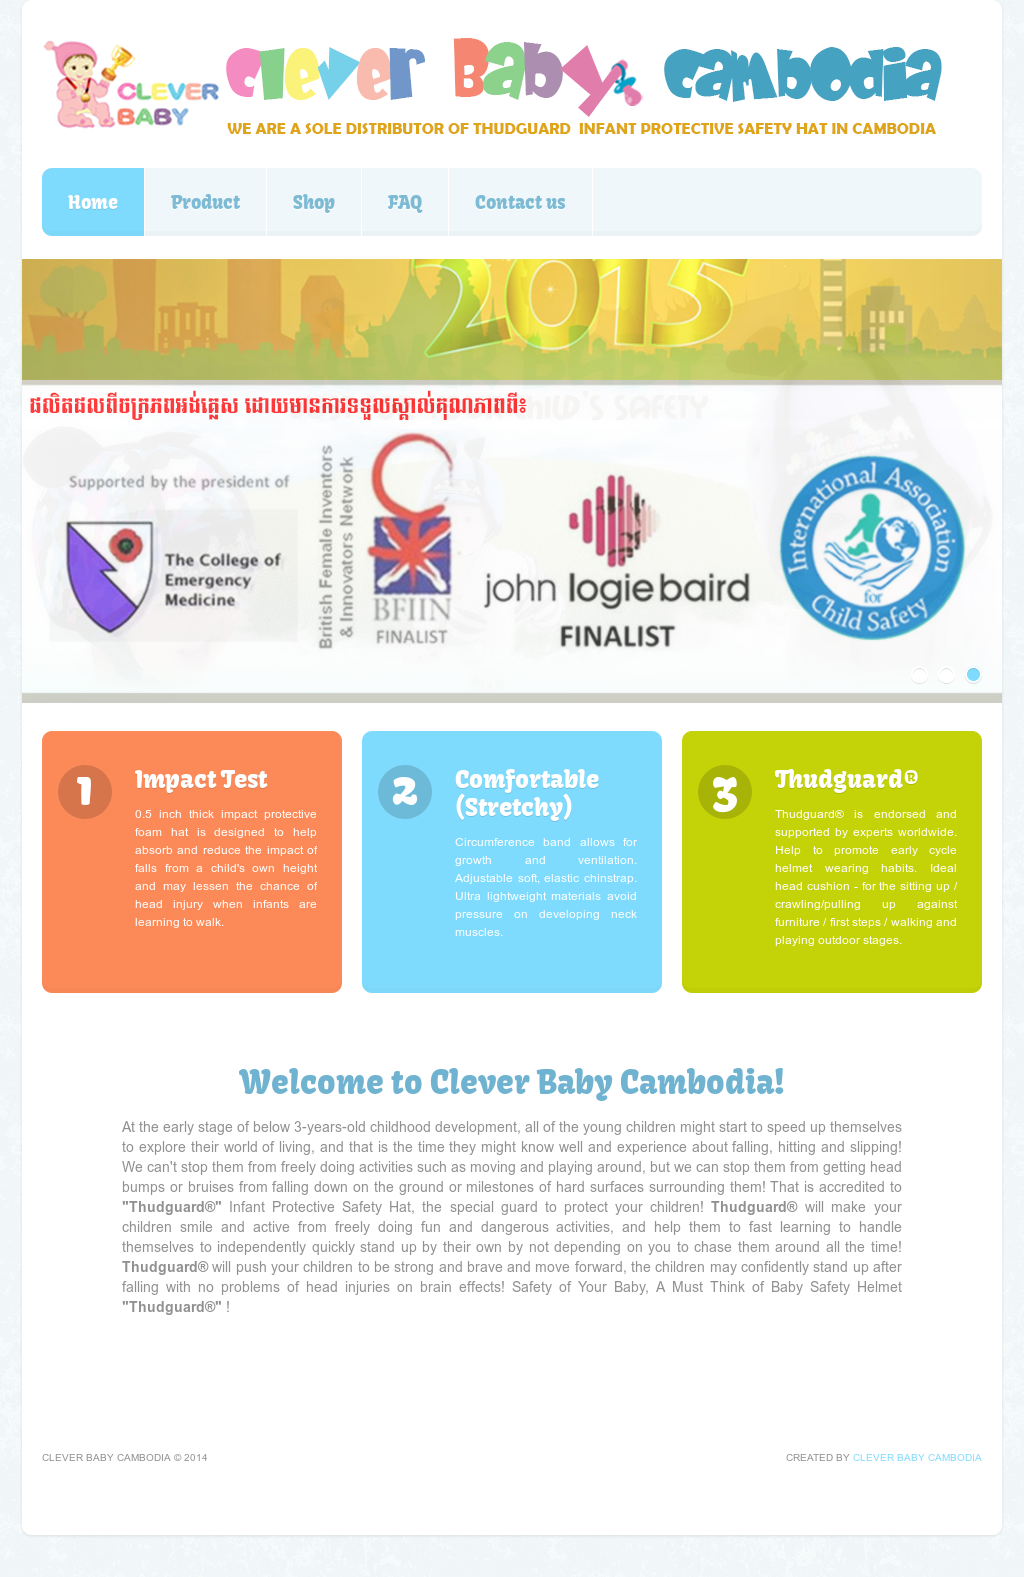 Clever Baby Cambodia Competitors, Revenue and Employees - Owler